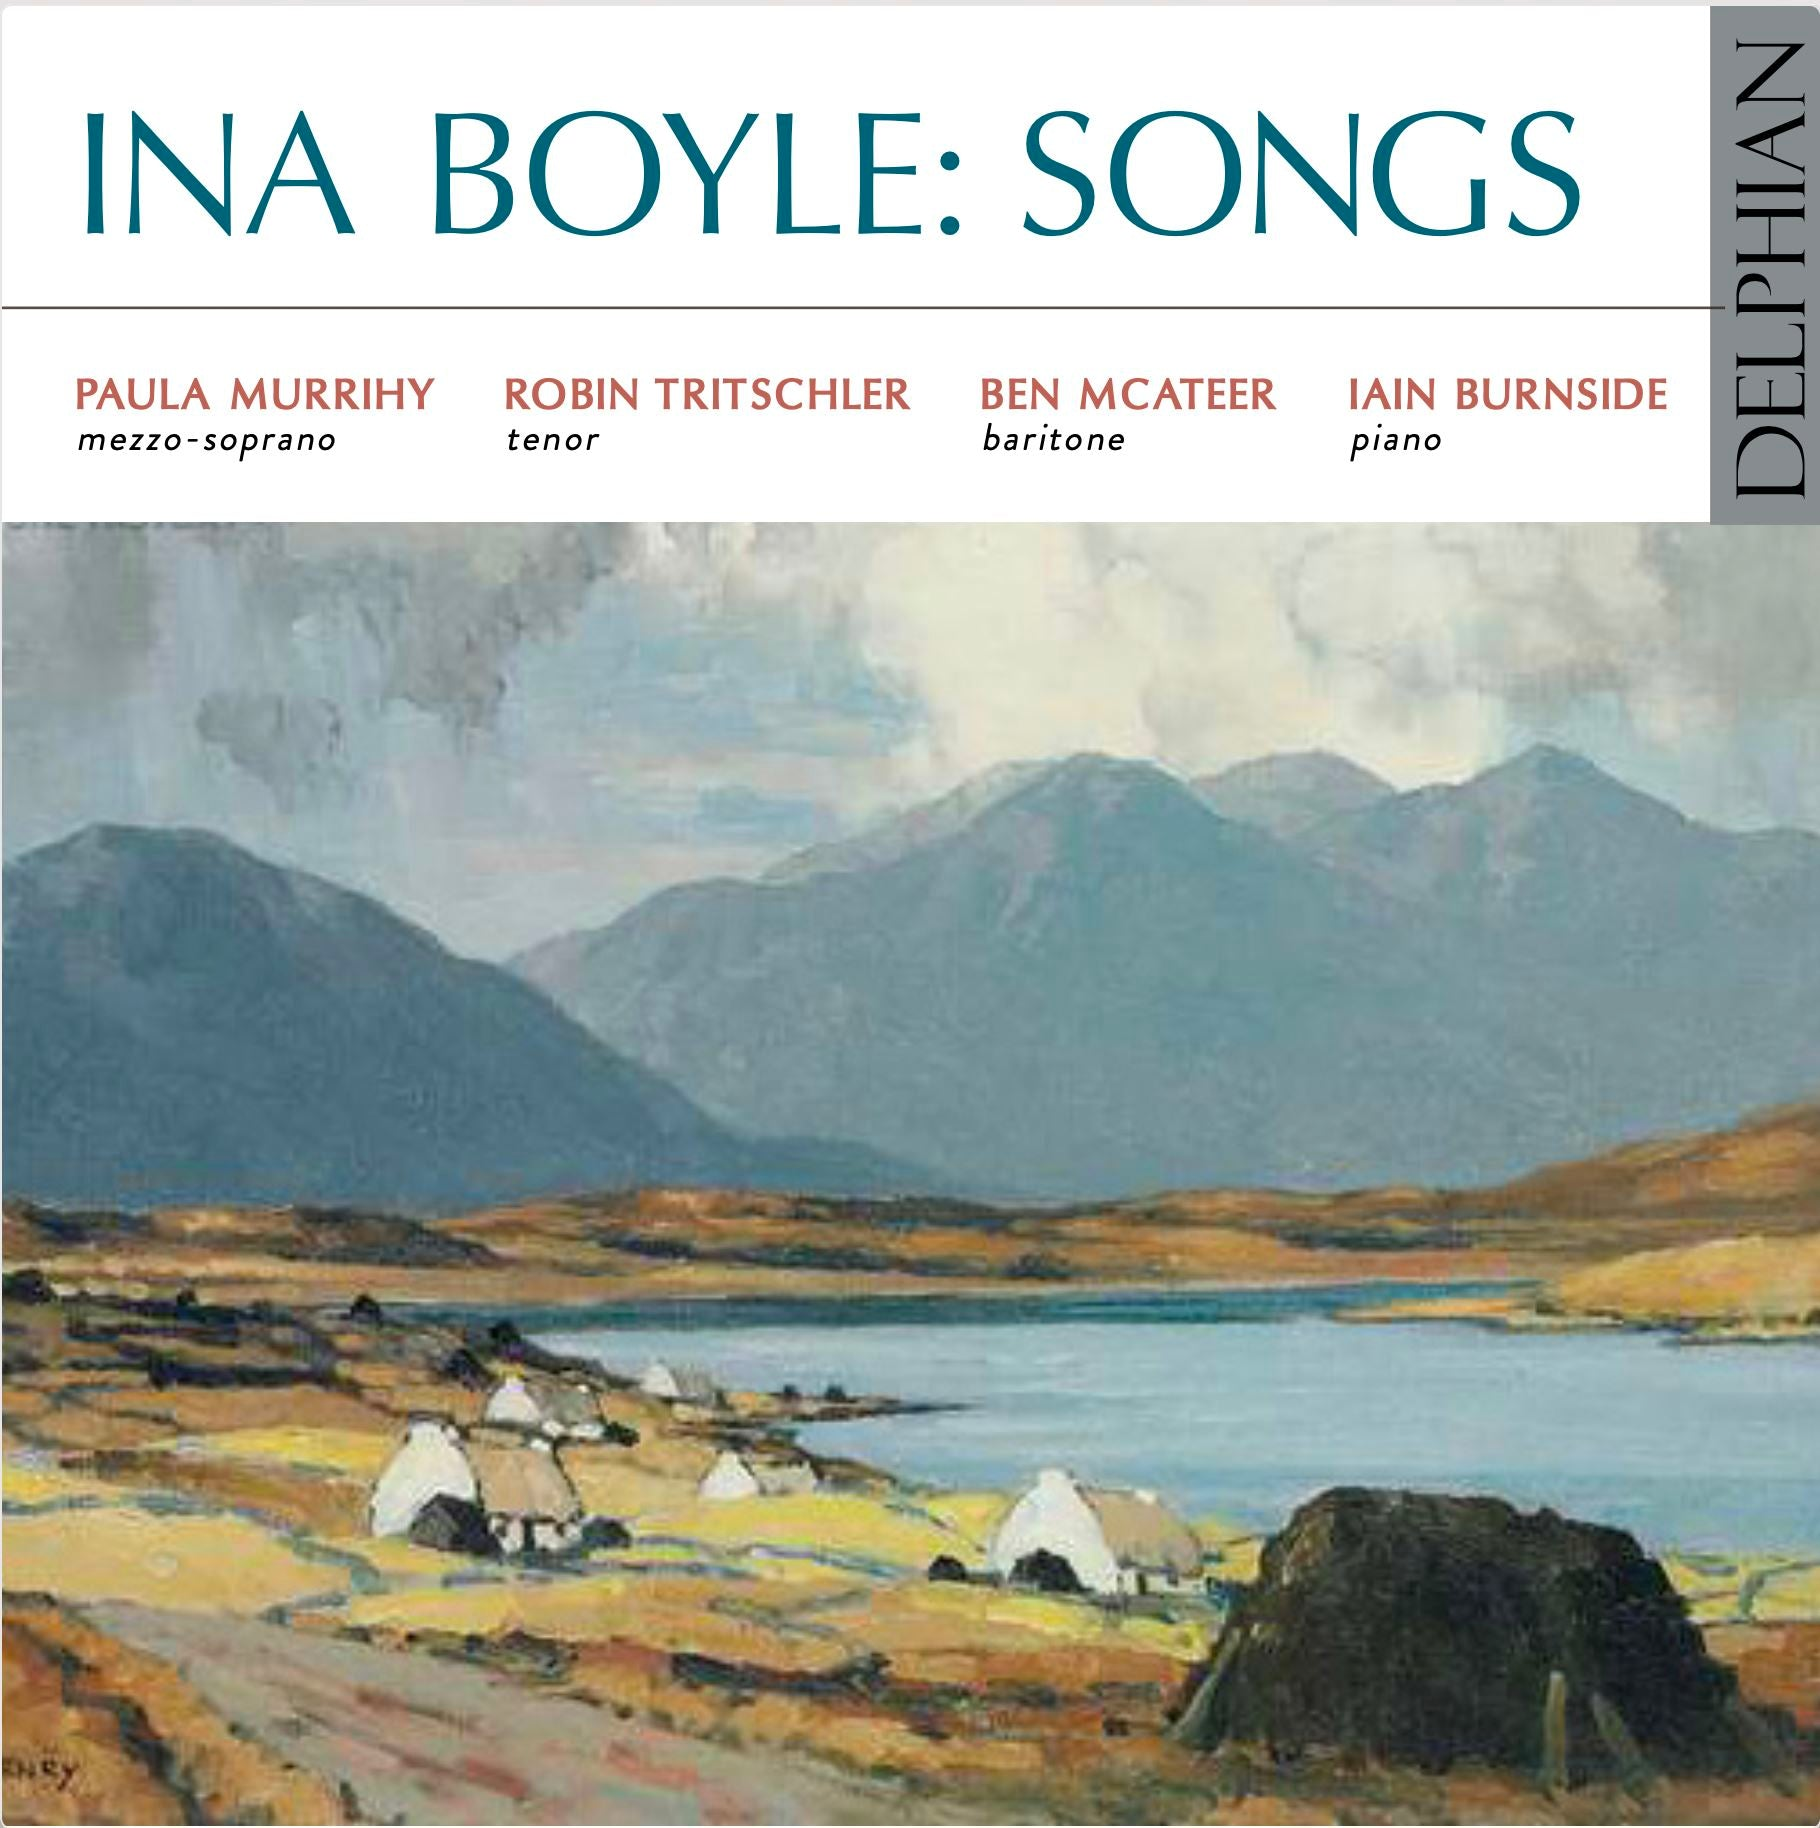 Ina Boyle: Songs CD Delphian Records